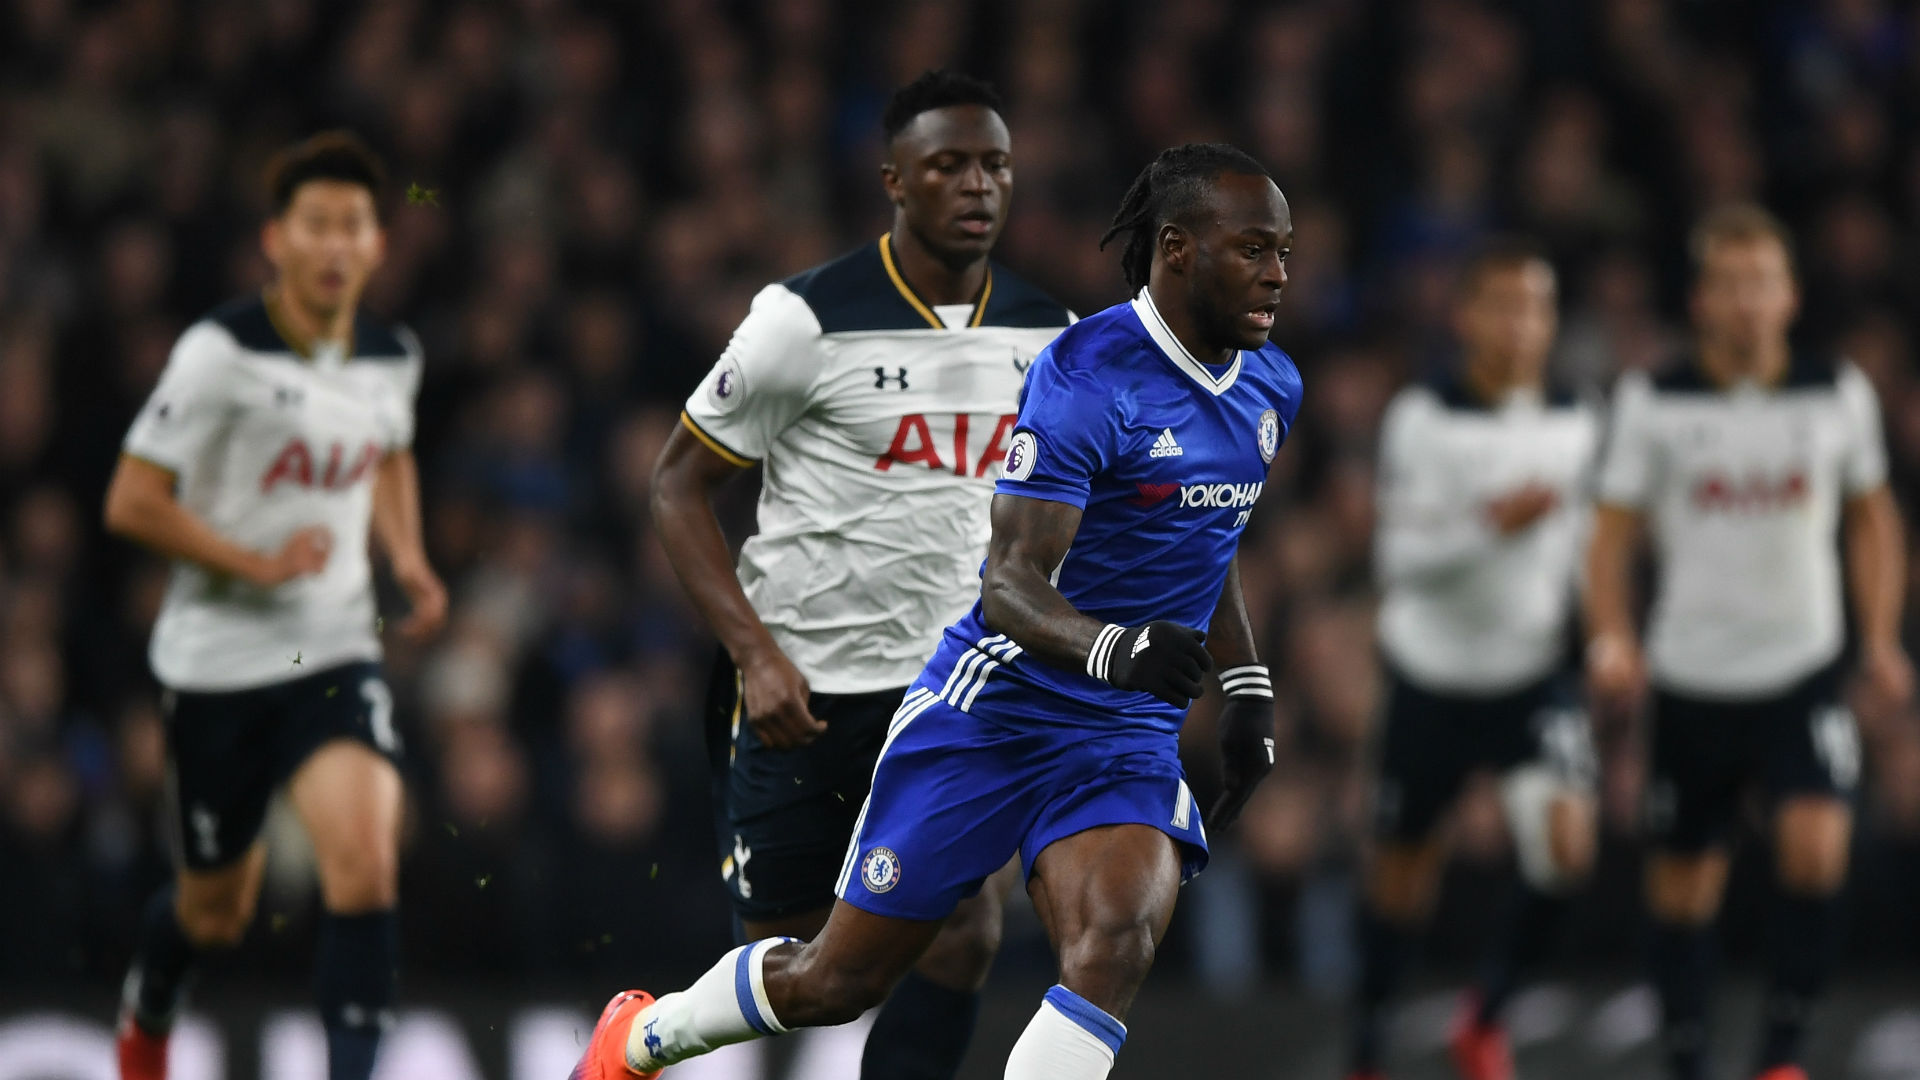 Tottenham End Chelsea's 13-Match Unbeaten Run In 2-0 Victory